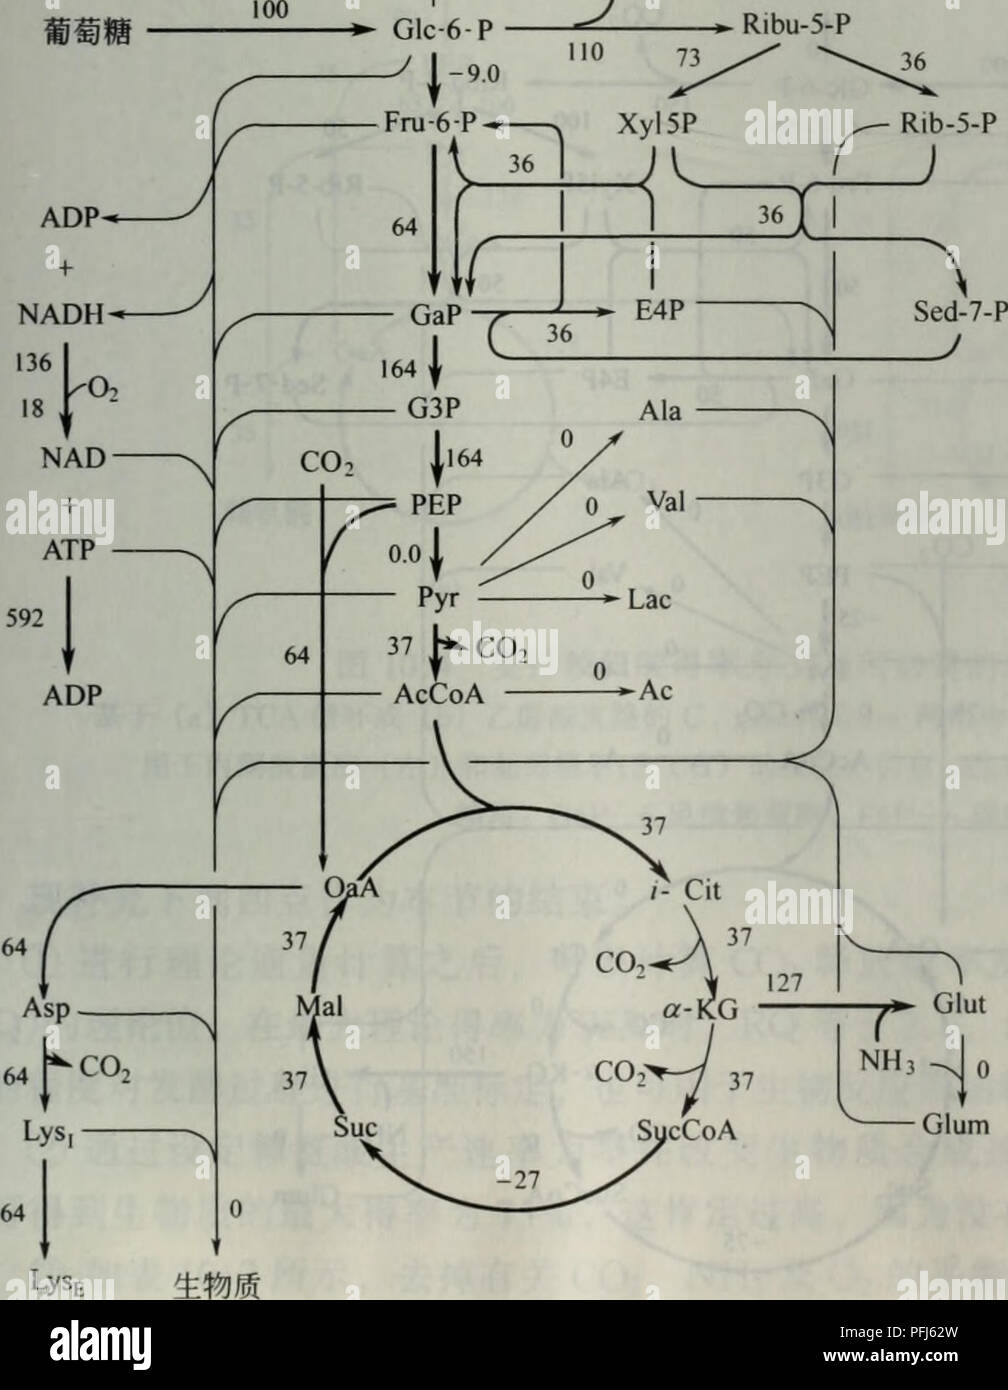 2 8i Stock Photos & 2 8i Stock Images - Alamy A Schematic Diagram Cht on